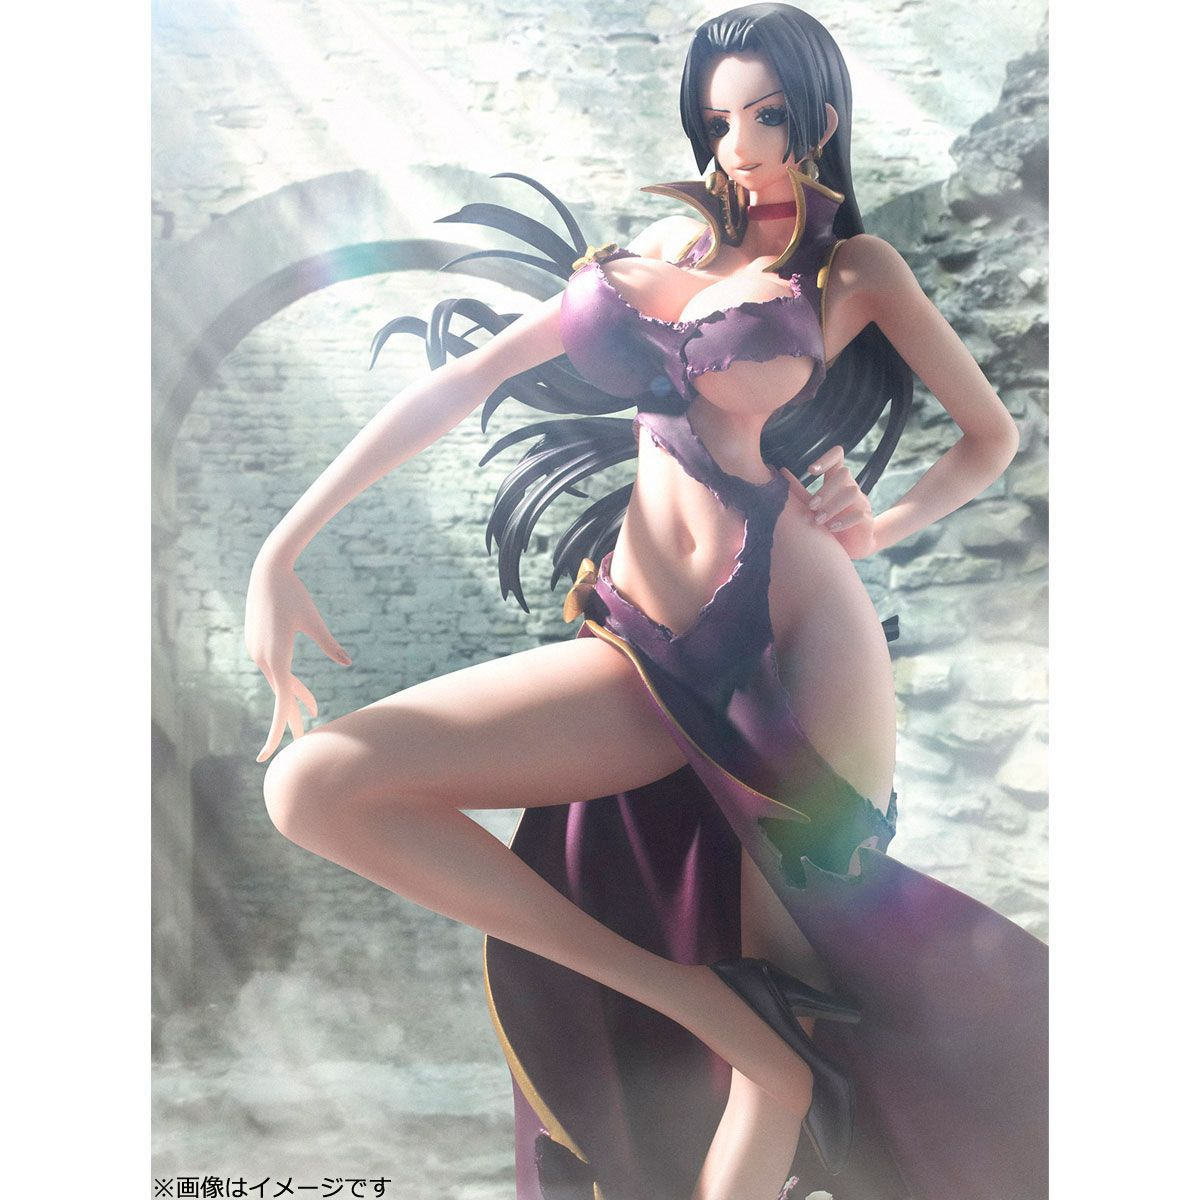 XINDUPLAN One Piece Boa Hancock VAH Anime Female Emperor Onepiece New World Sexy Action Figure Toys 23cm PVC Collect Model 0959 sexy boa hancock pvc action figure one piece anime model toy gift decoration figurines for collections free shipping 10 25cm